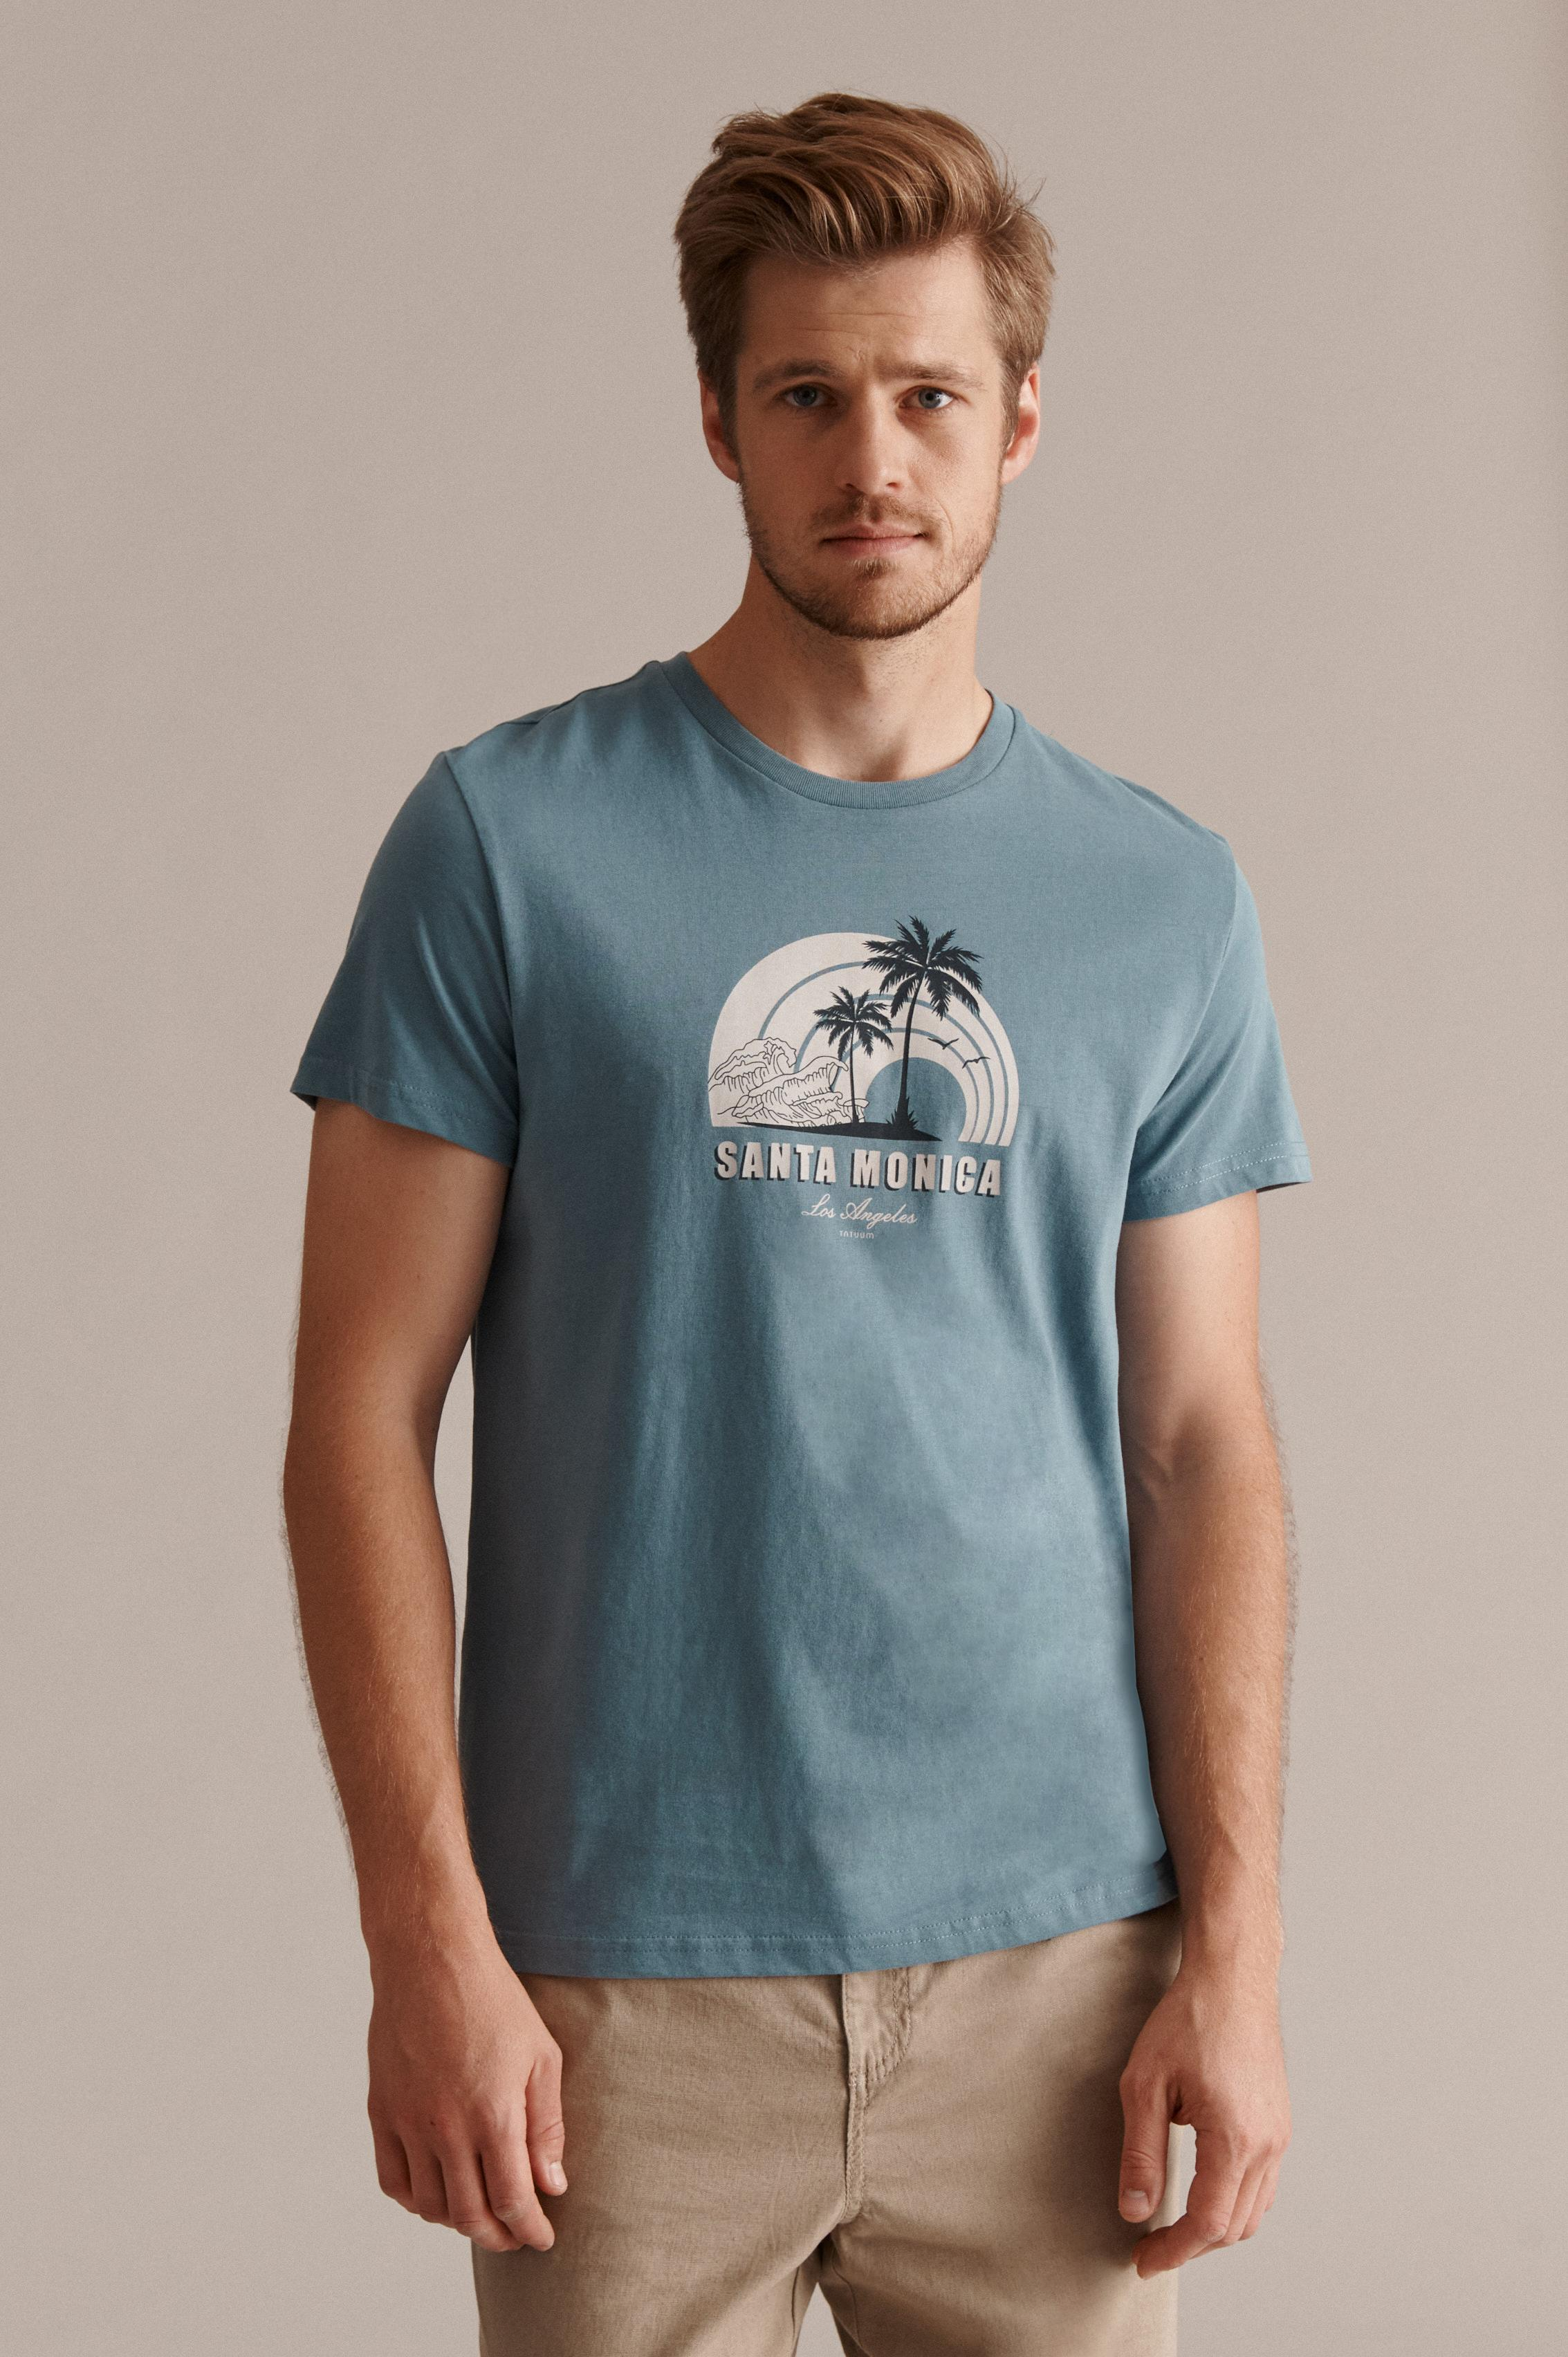 MEN'S T-SHIRT WITH HOLIDAYS THEME MIKIN 26